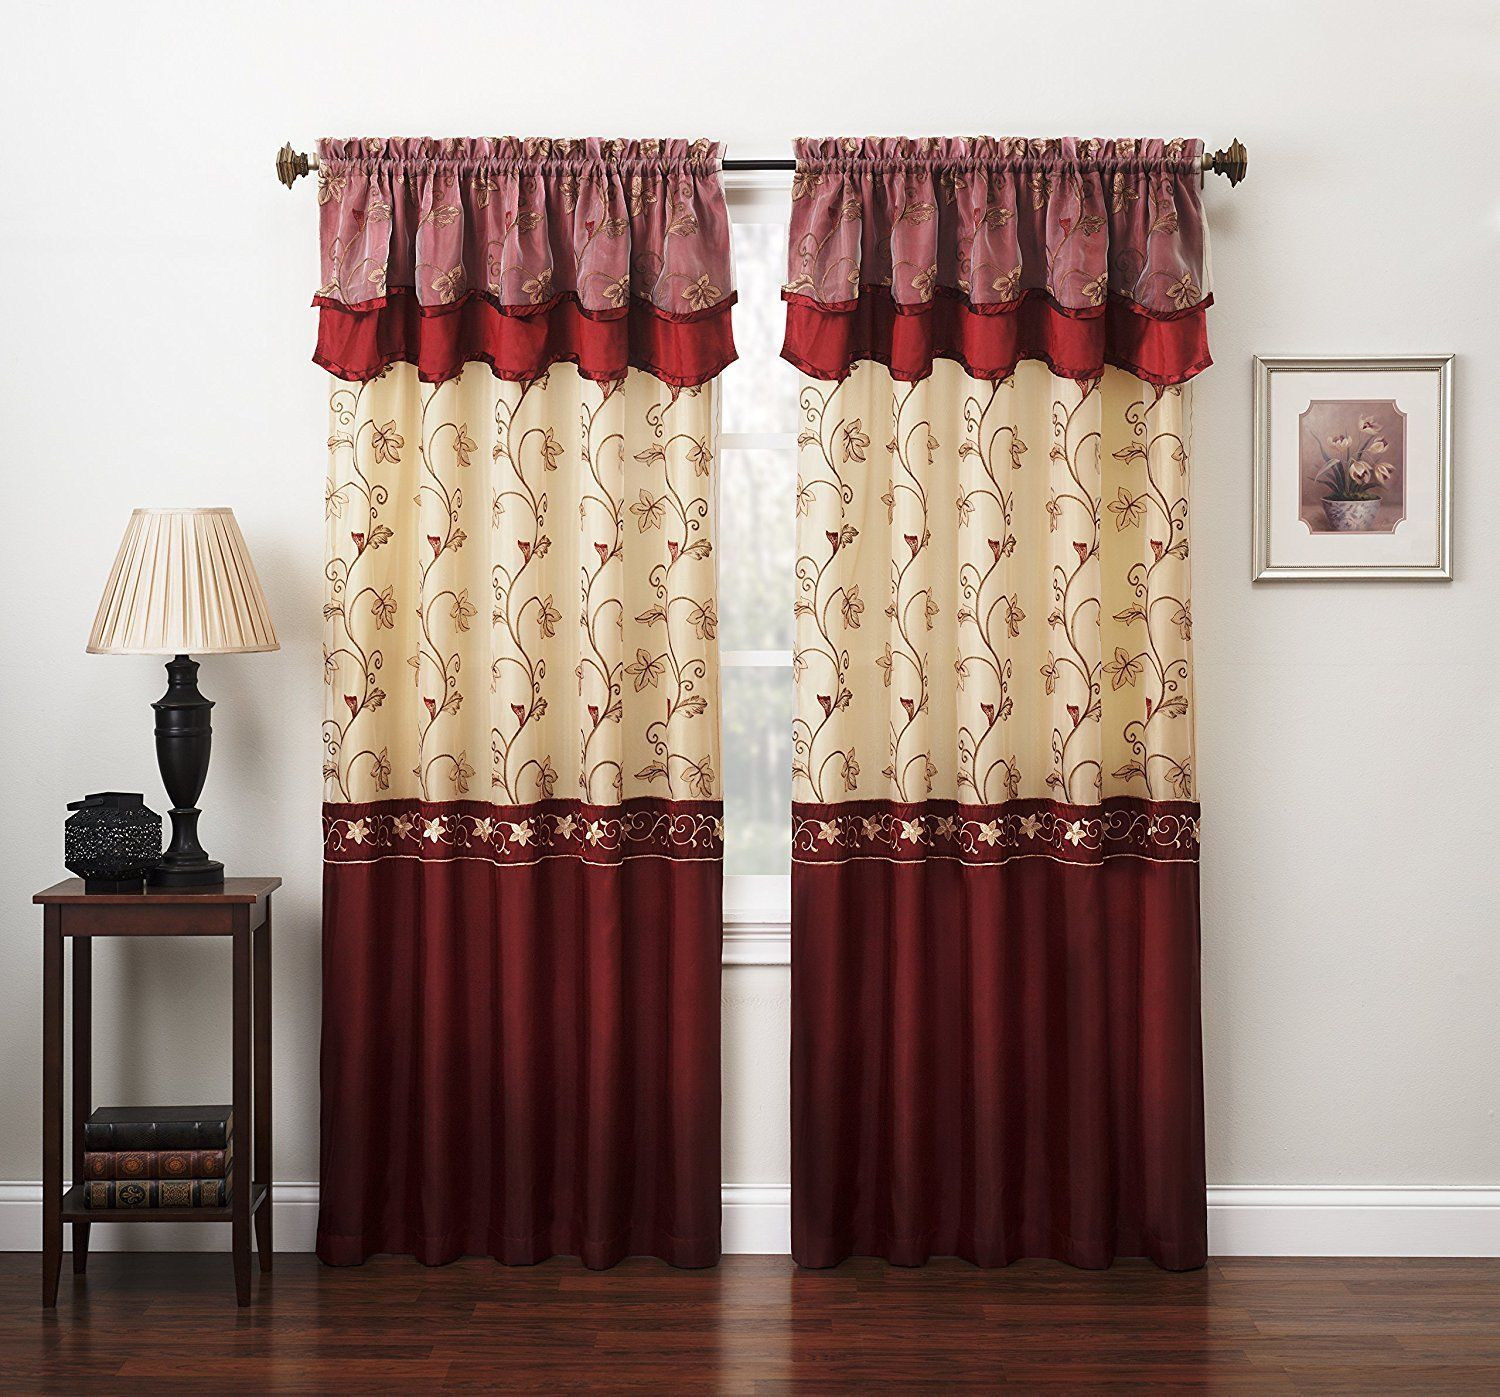 Embroidered Curtains | Crewel Embroidered Curtains | Pom Pom Drapes